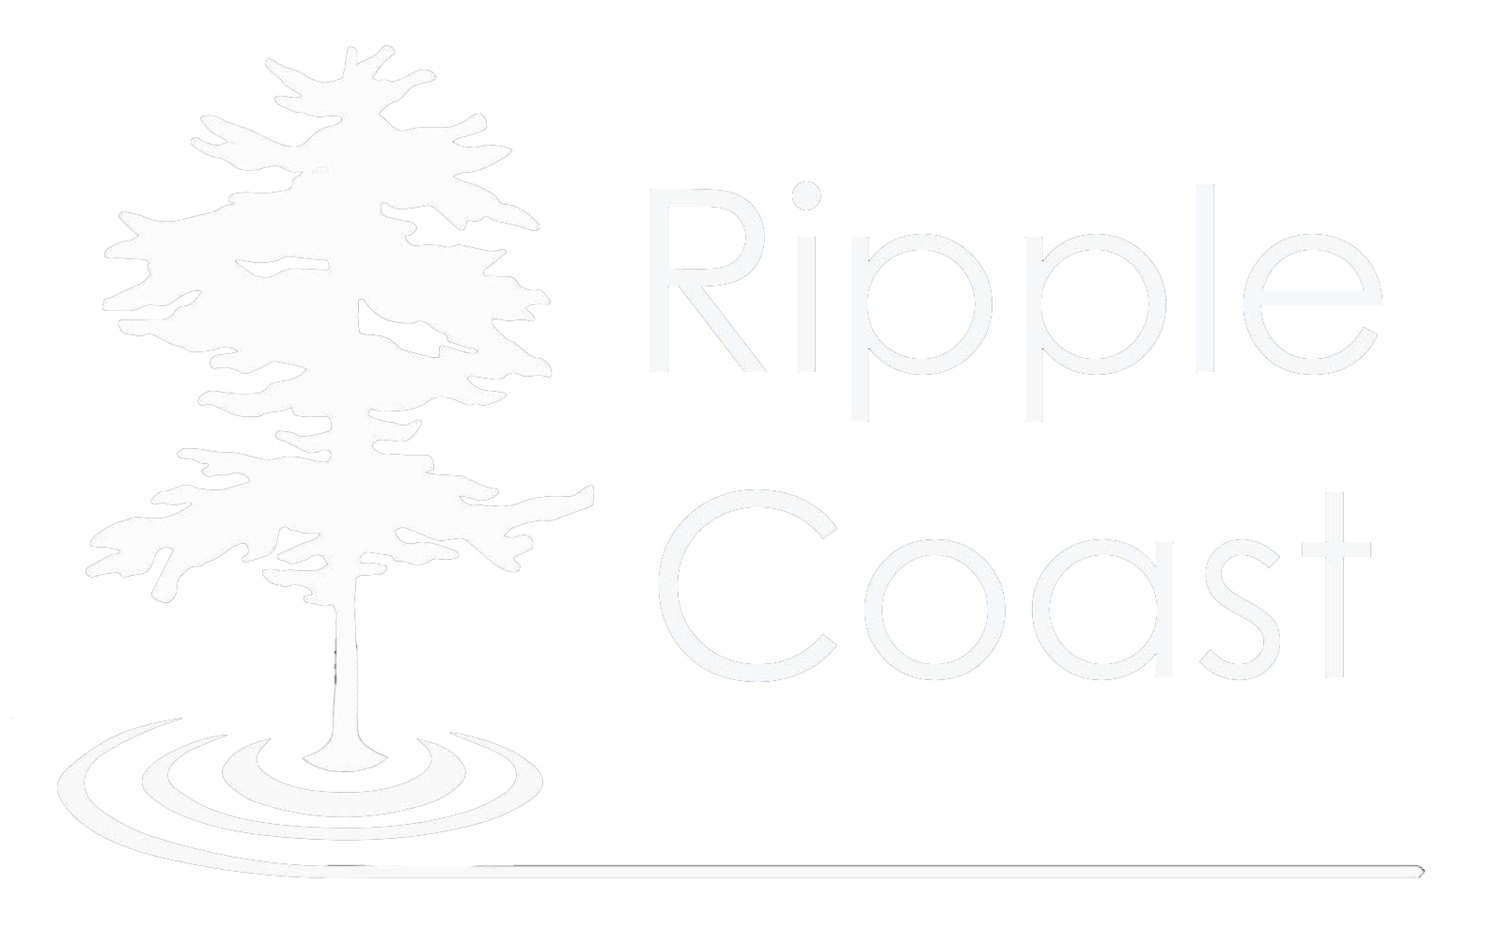 Ripple Coast Society